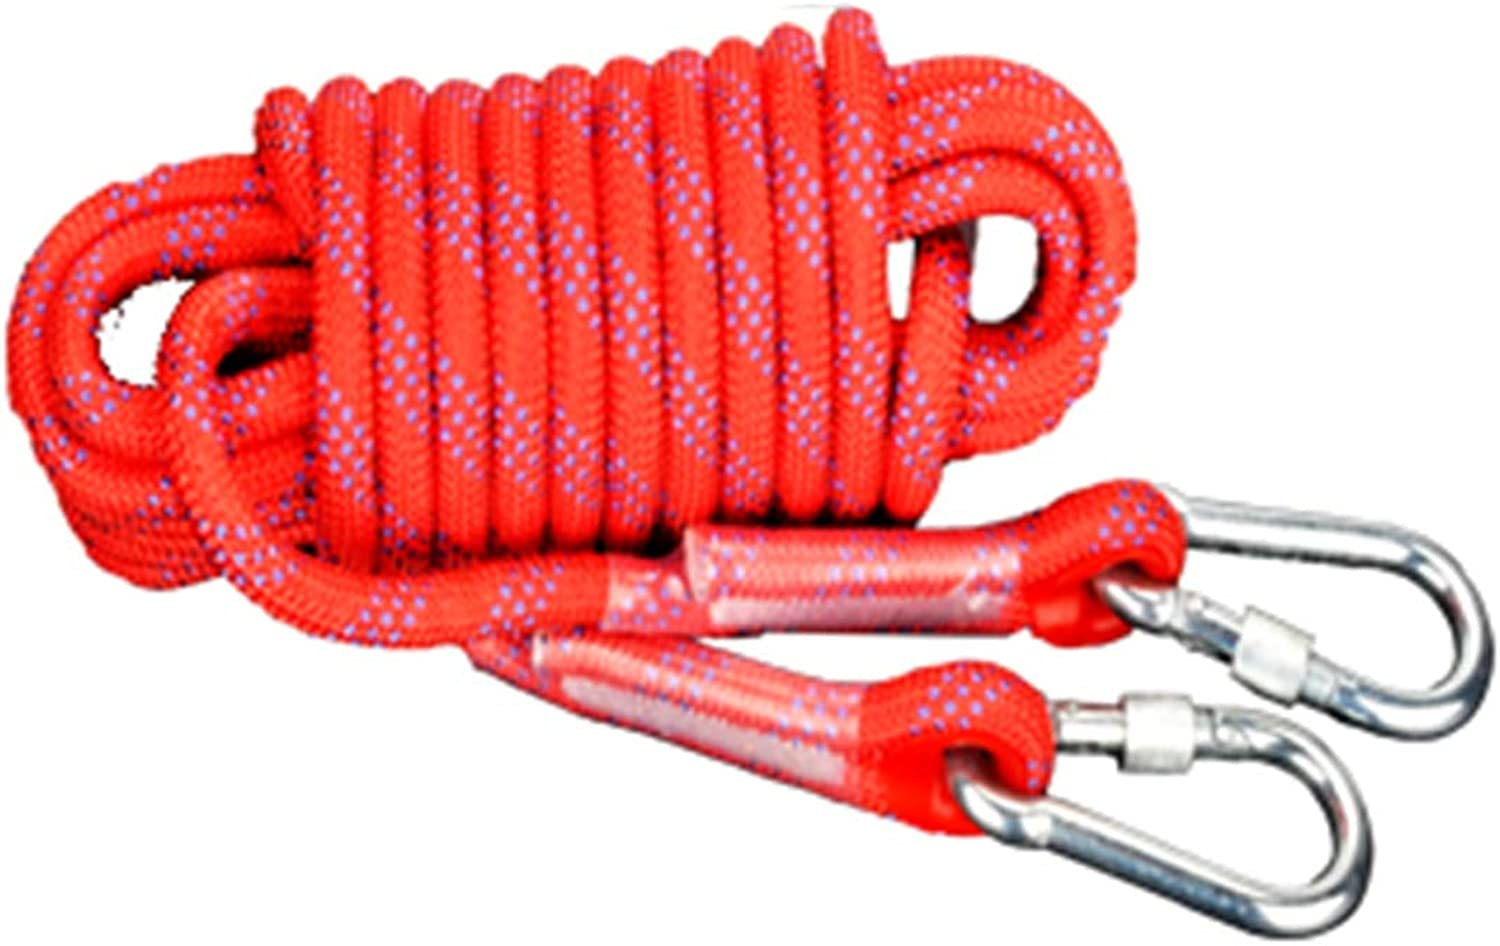 Outdoor Mountaineering Camping Bundled Escape Slip Rope,Red10mm10m